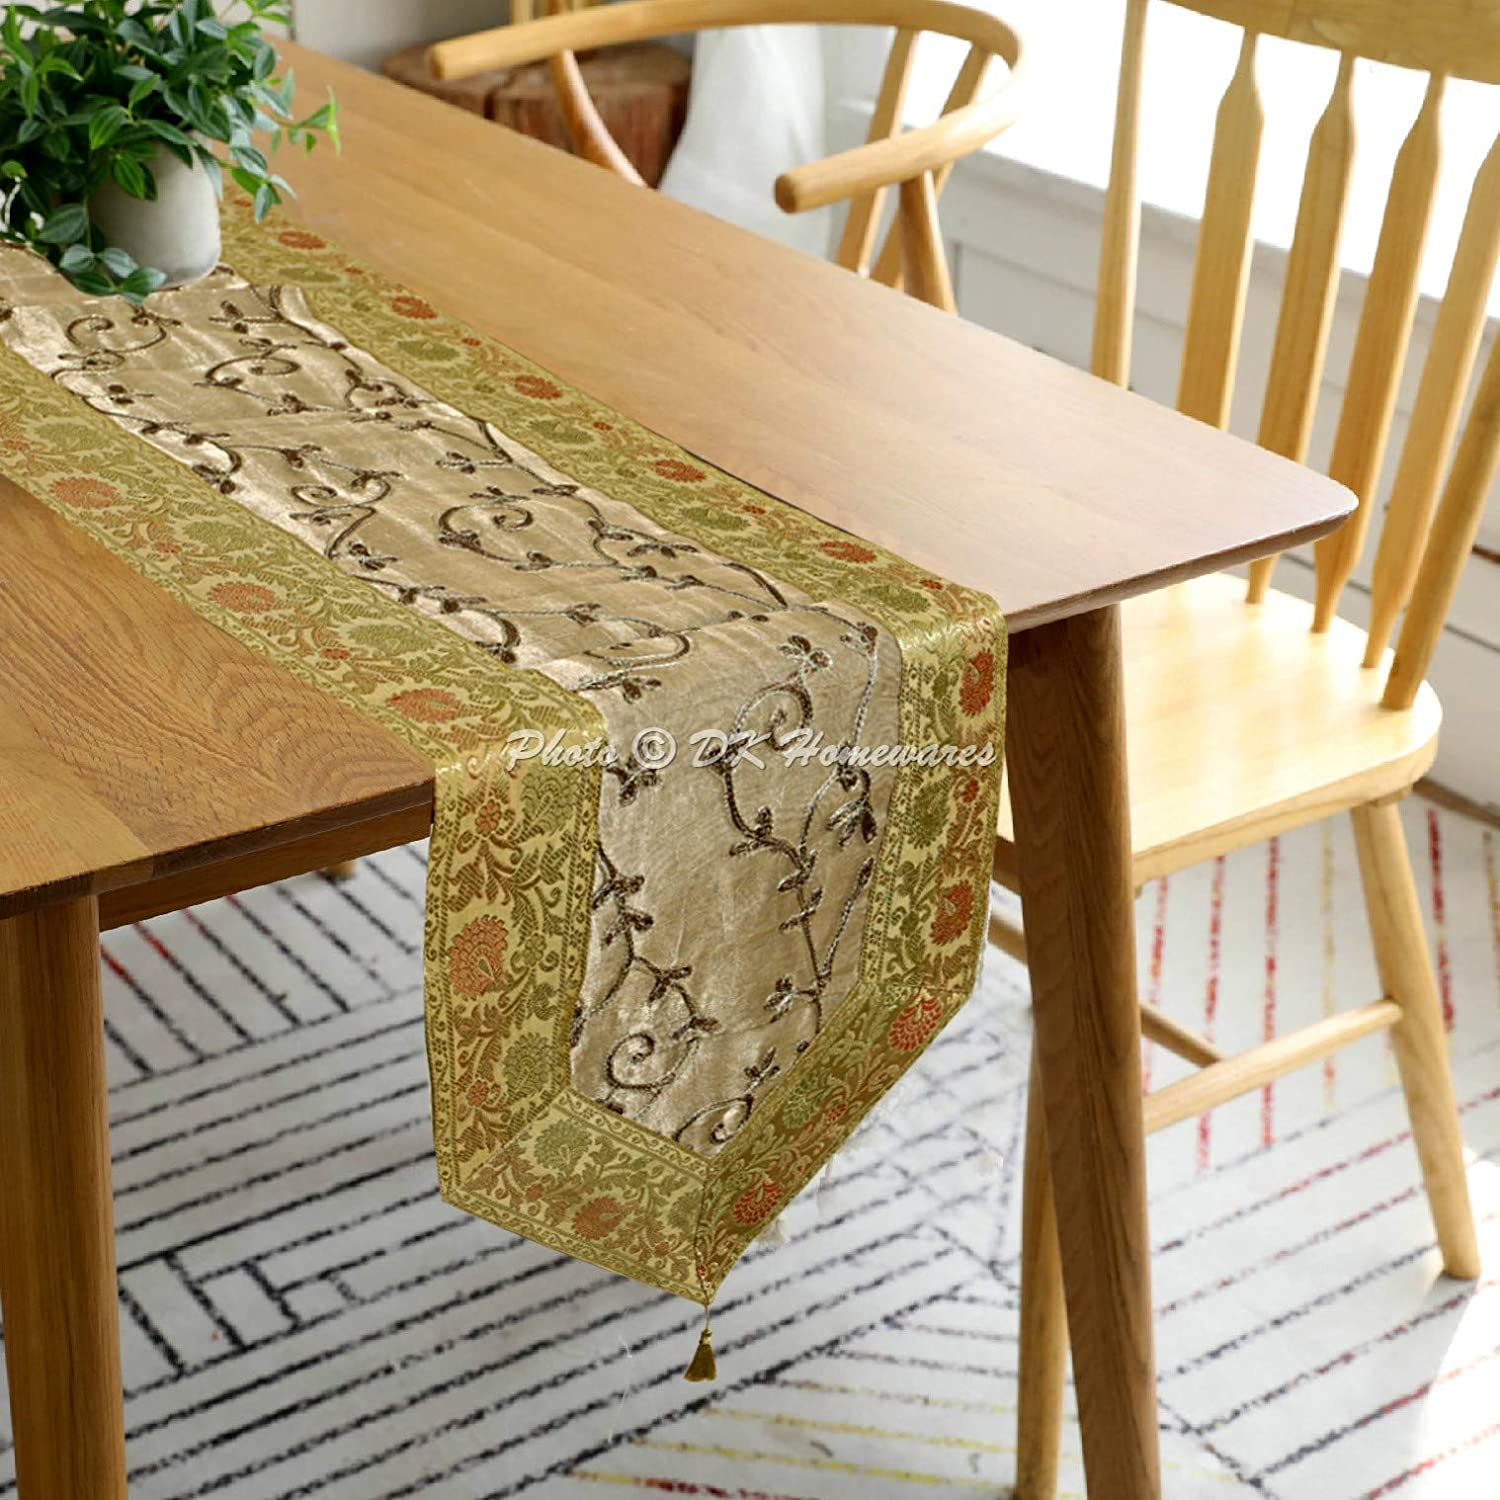 Dk Homewares Indian Ethnic Embroidered Jacquard Floral Kitchen Decoration Centerpiece Gold Grey Brocade Tissue Fabric Birthday Party 180 X 35 Cm Table Runner 6 Ft 72 X 14 Inches Home Kitchen